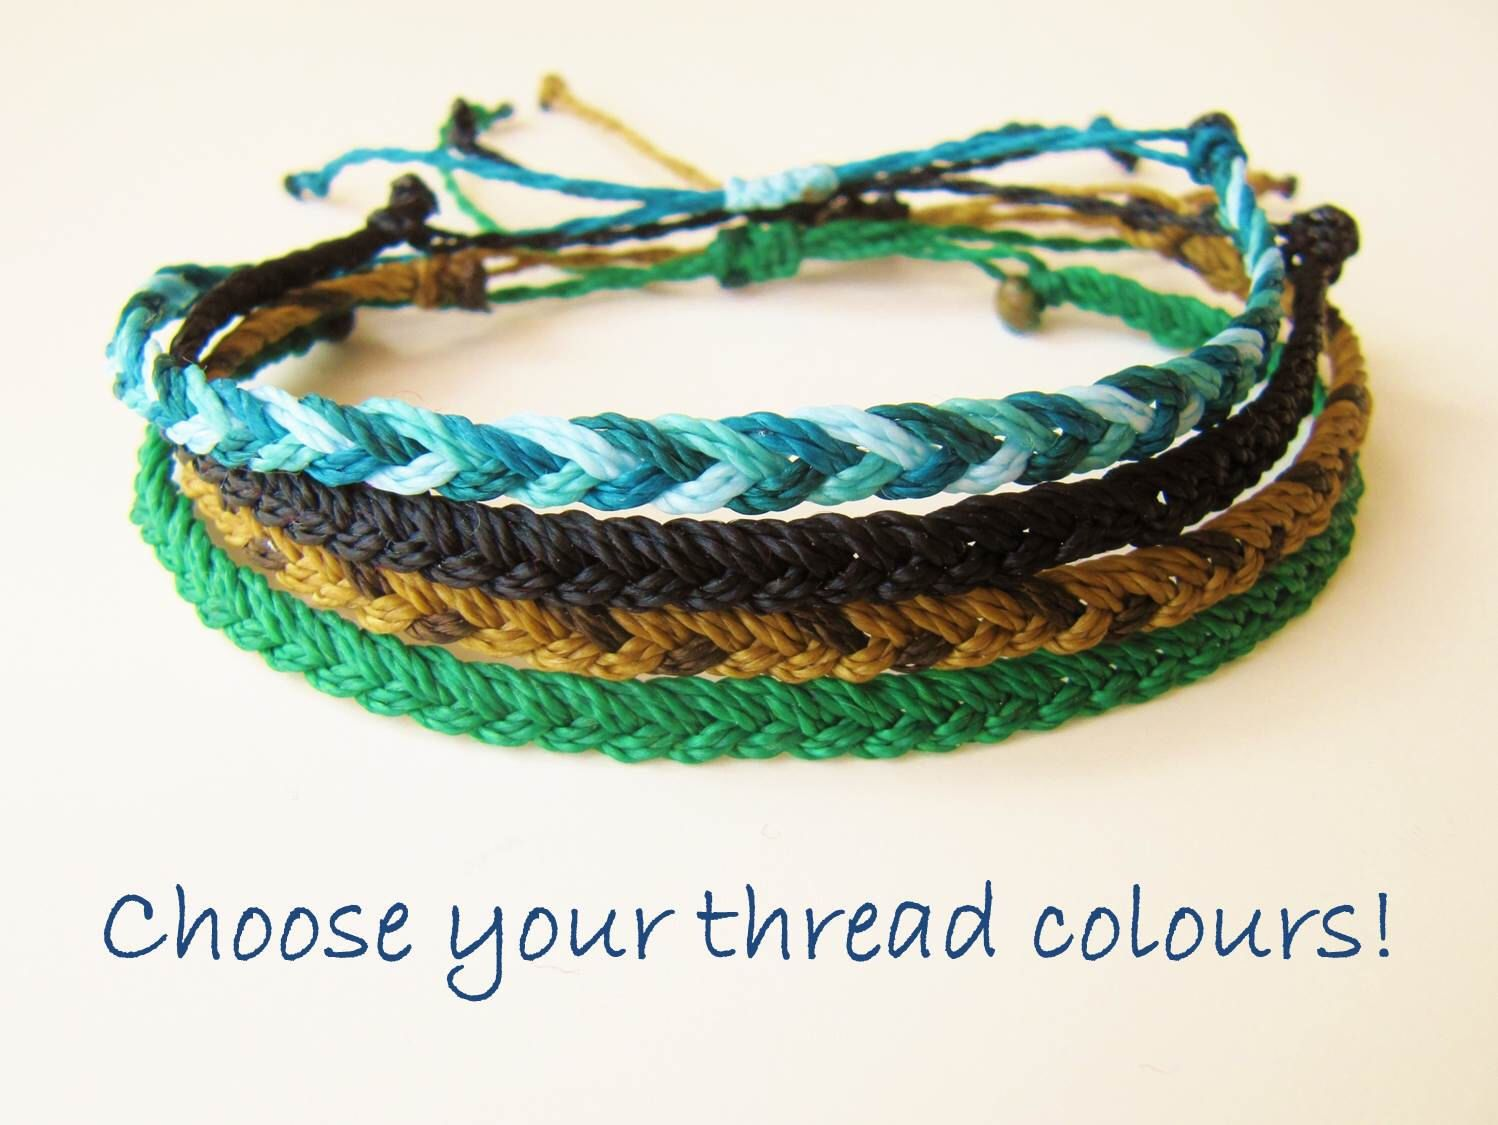 of colourful fun knotting cord a article jewelry waxed irish tips linen n bracelet lots with tricks for